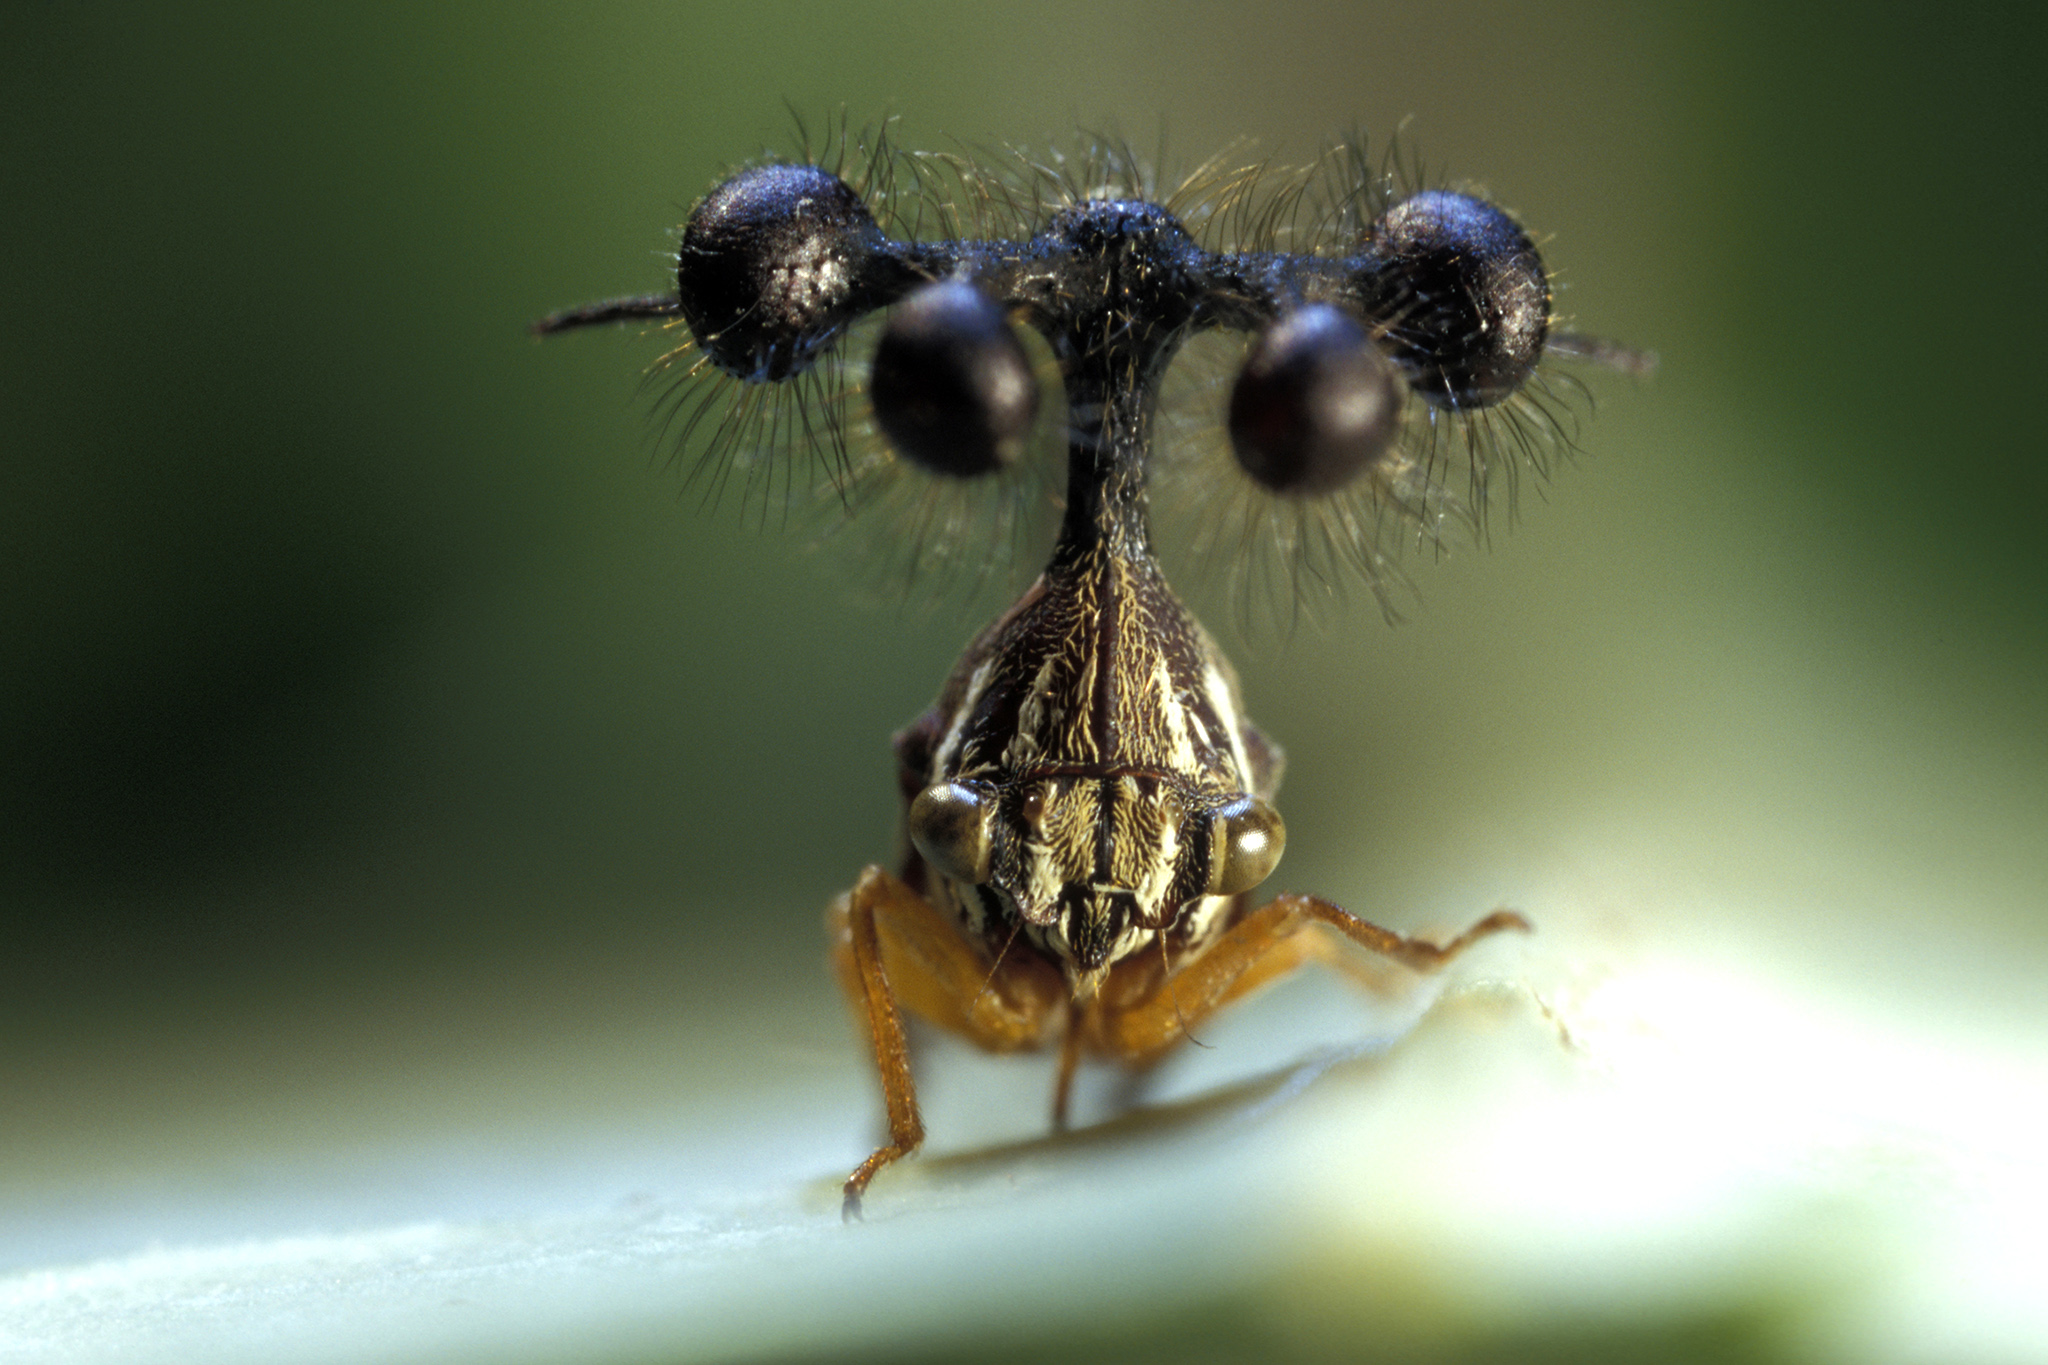 RImage  FRENCH GUYANA - SEPTEMBER 2005: Bocydium globulare, fullface. The sensory hairs or sensillae around the little balls may act as a warning for the insect by capturing air vibrations when any predators approach. (Photo by Patrick Landmann/Exclusive by Getty Images)